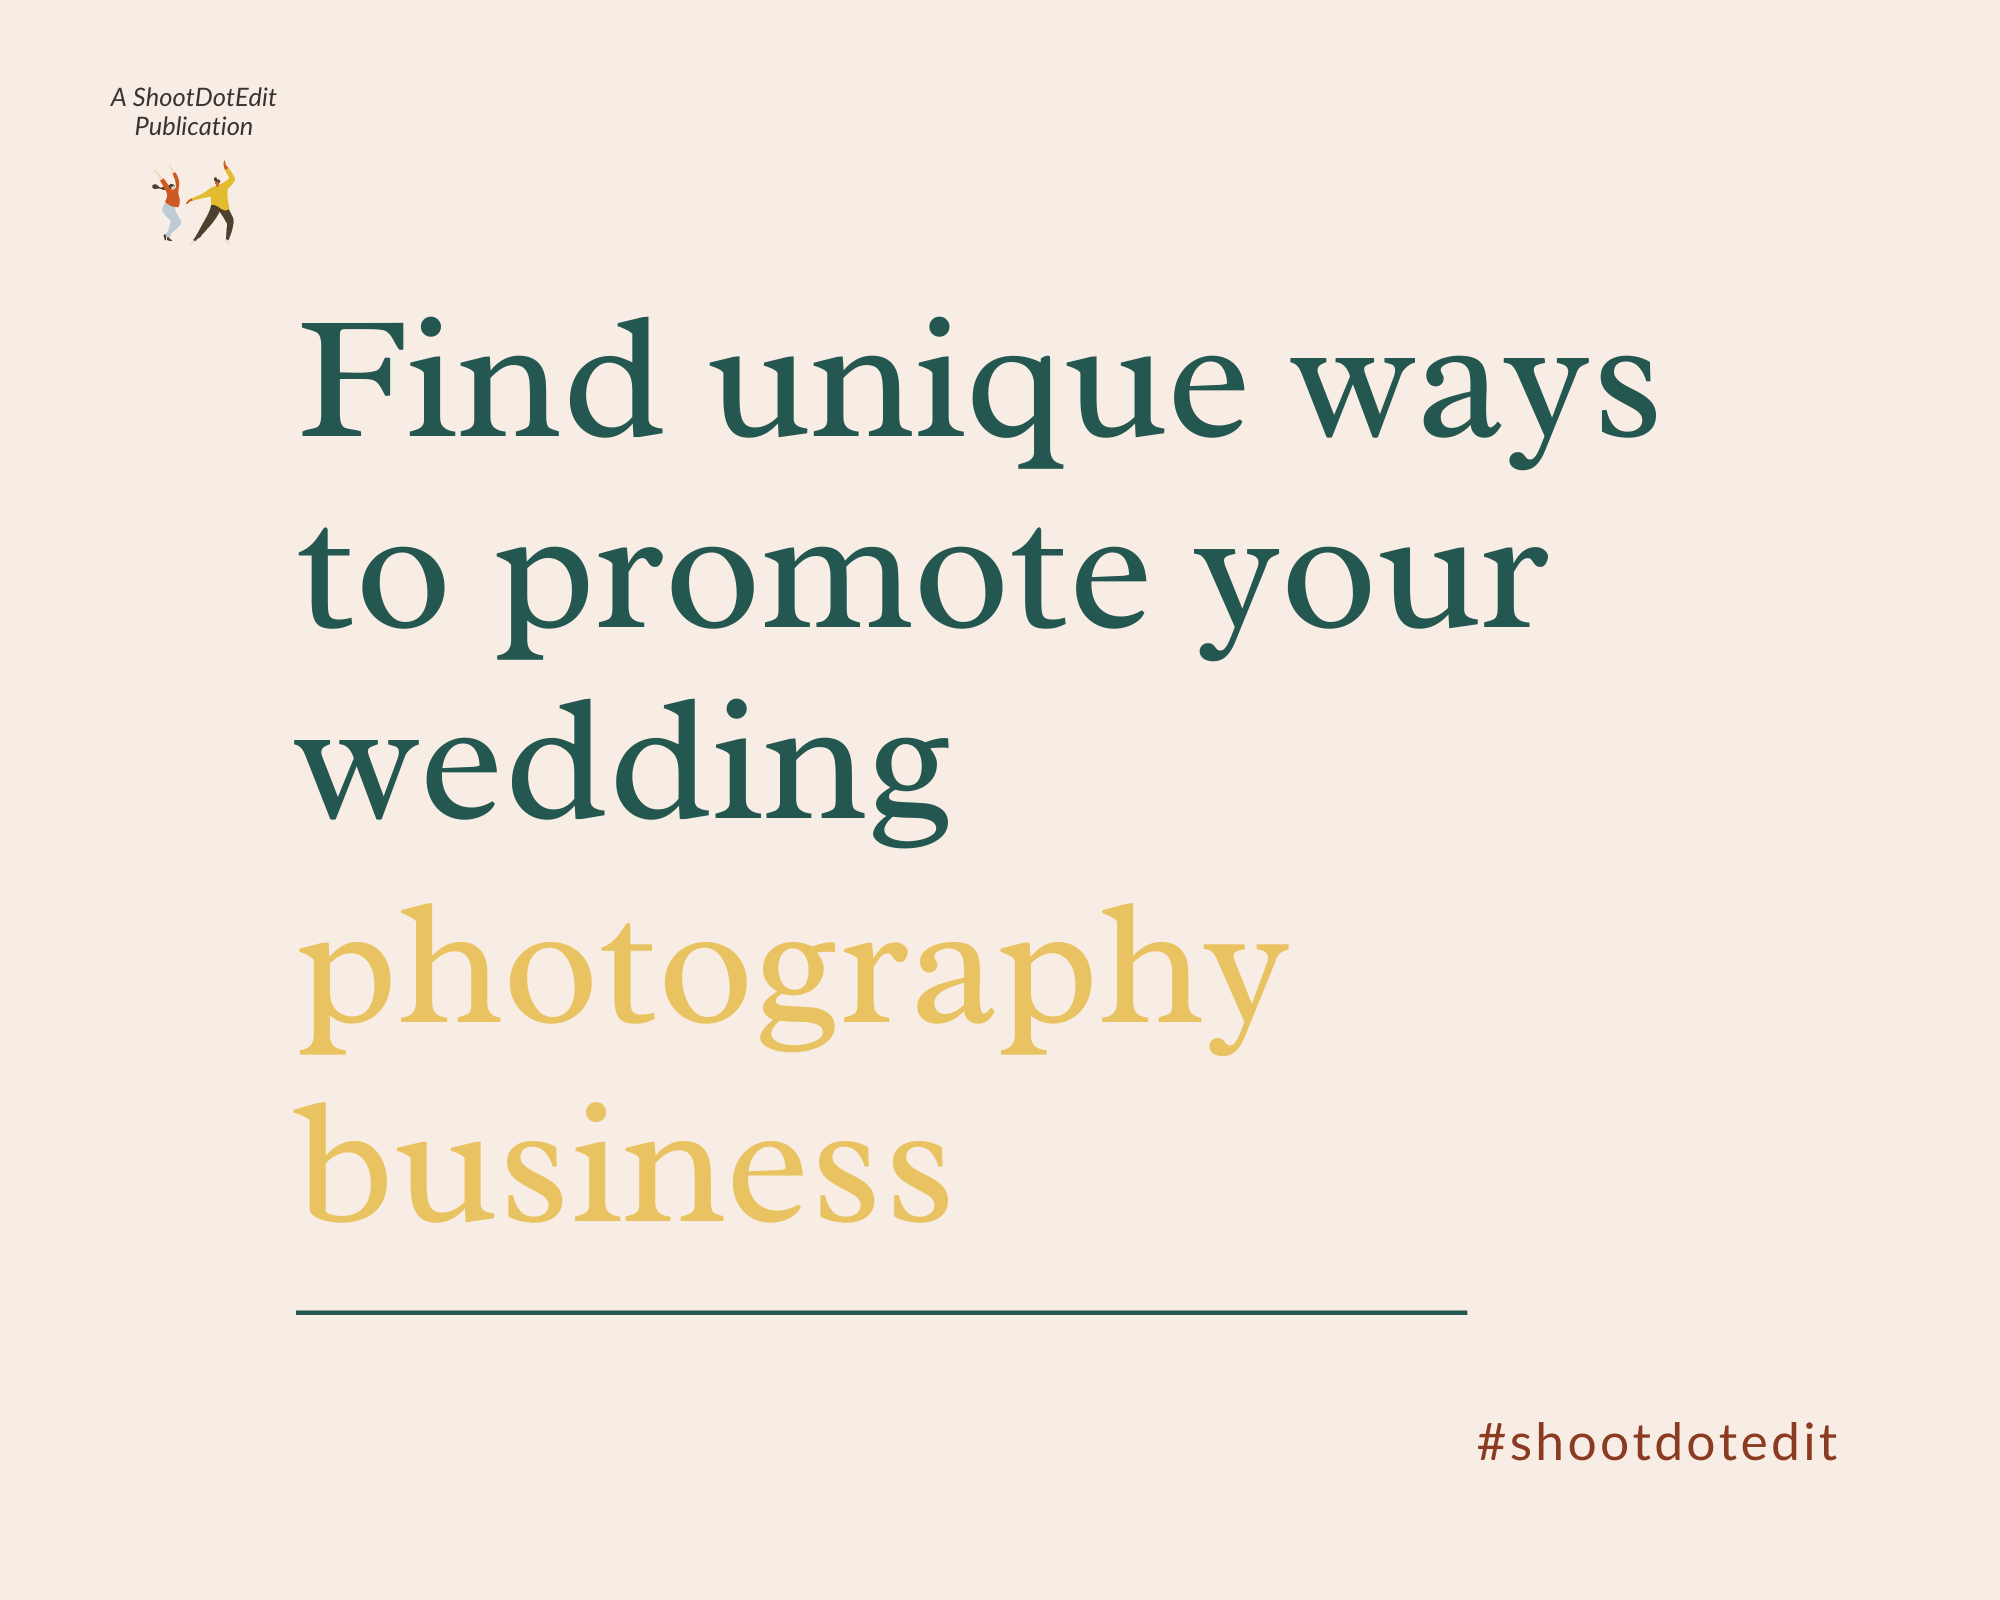 Infographic stating find unique ways to promote your wedding photography business